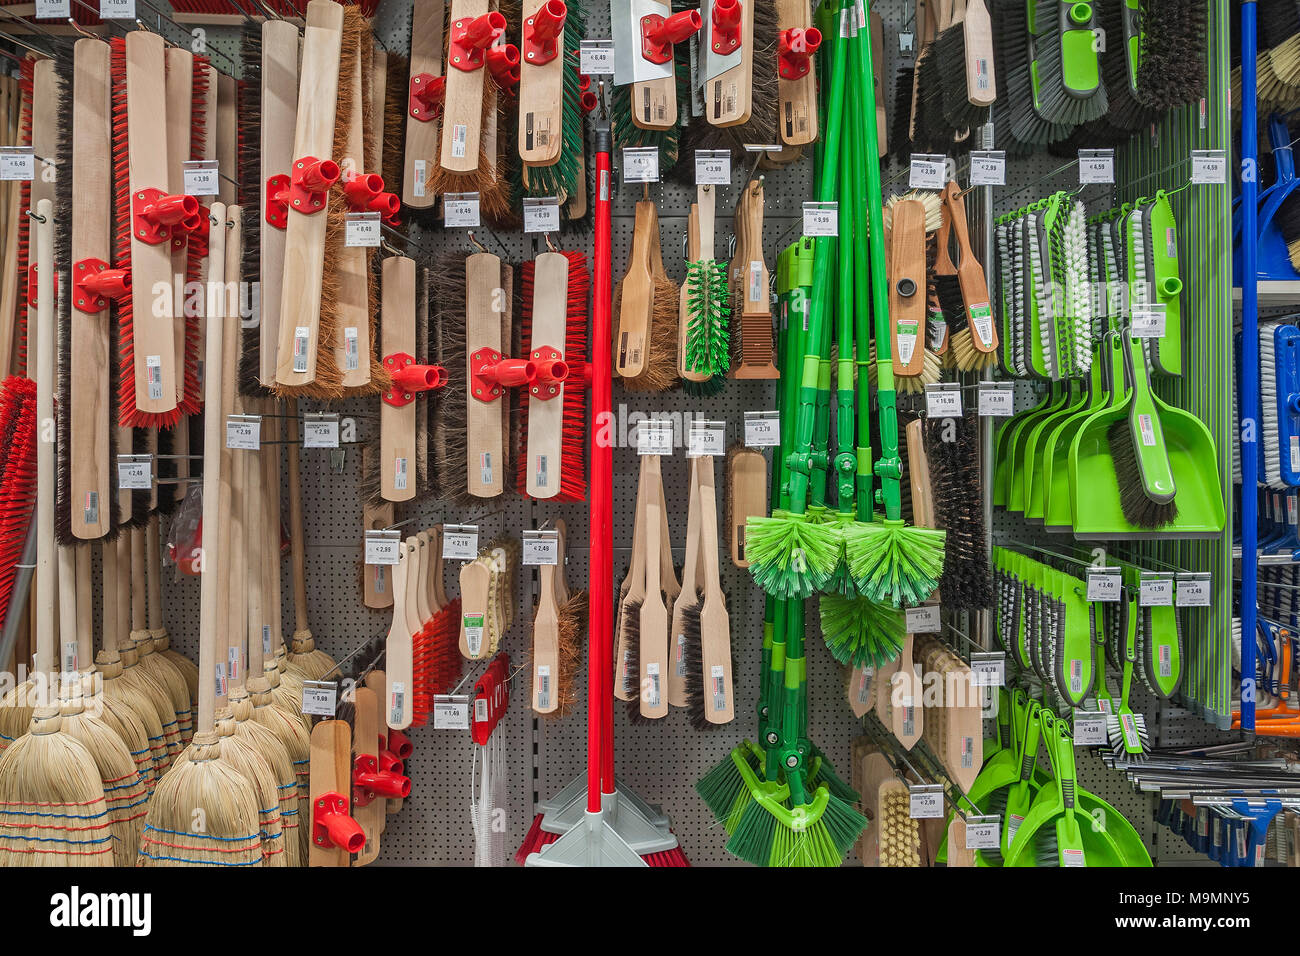 Brooms and brushes, hardware store, interior, Bavaria, Germany - Stock Image